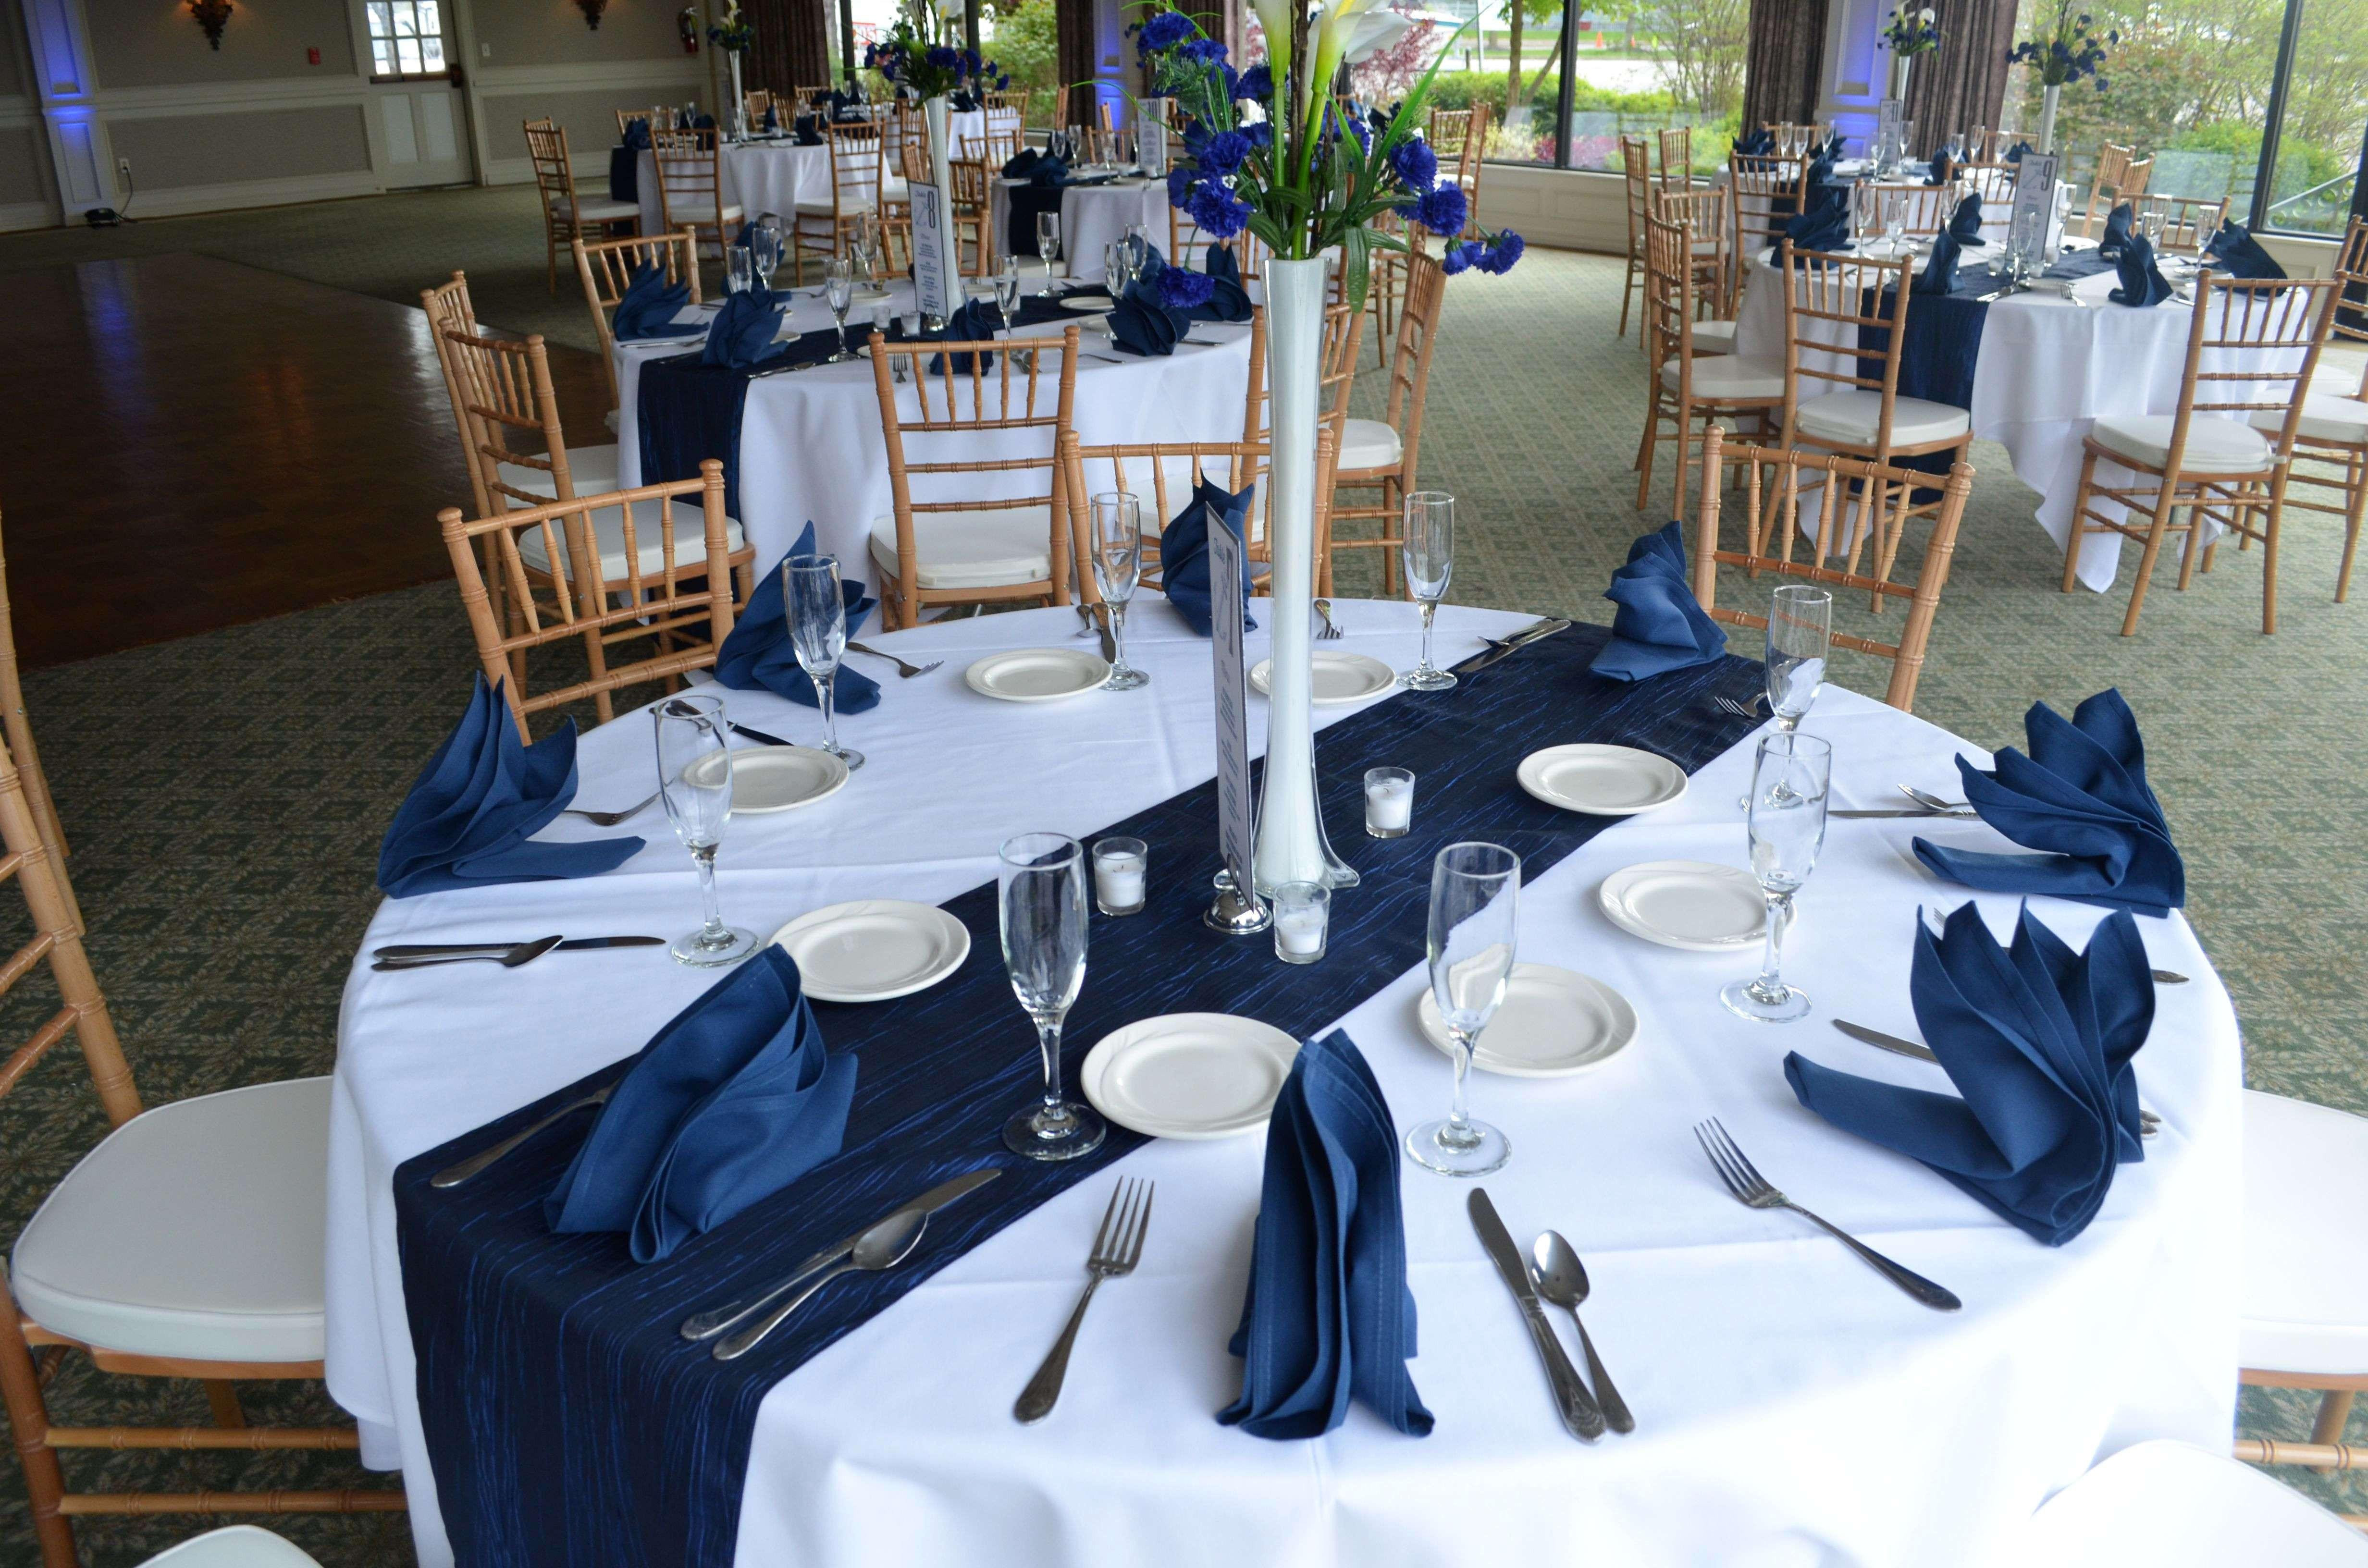 13 Ideal Blue Centerpiece Vases 2021 free download blue centerpiece vases of luxury of diy wedding reception ideas photos artsvisuelscaribeens com with regard to luxury vases hurricane for weddings elegant nashville mansion weddingi 0d for g